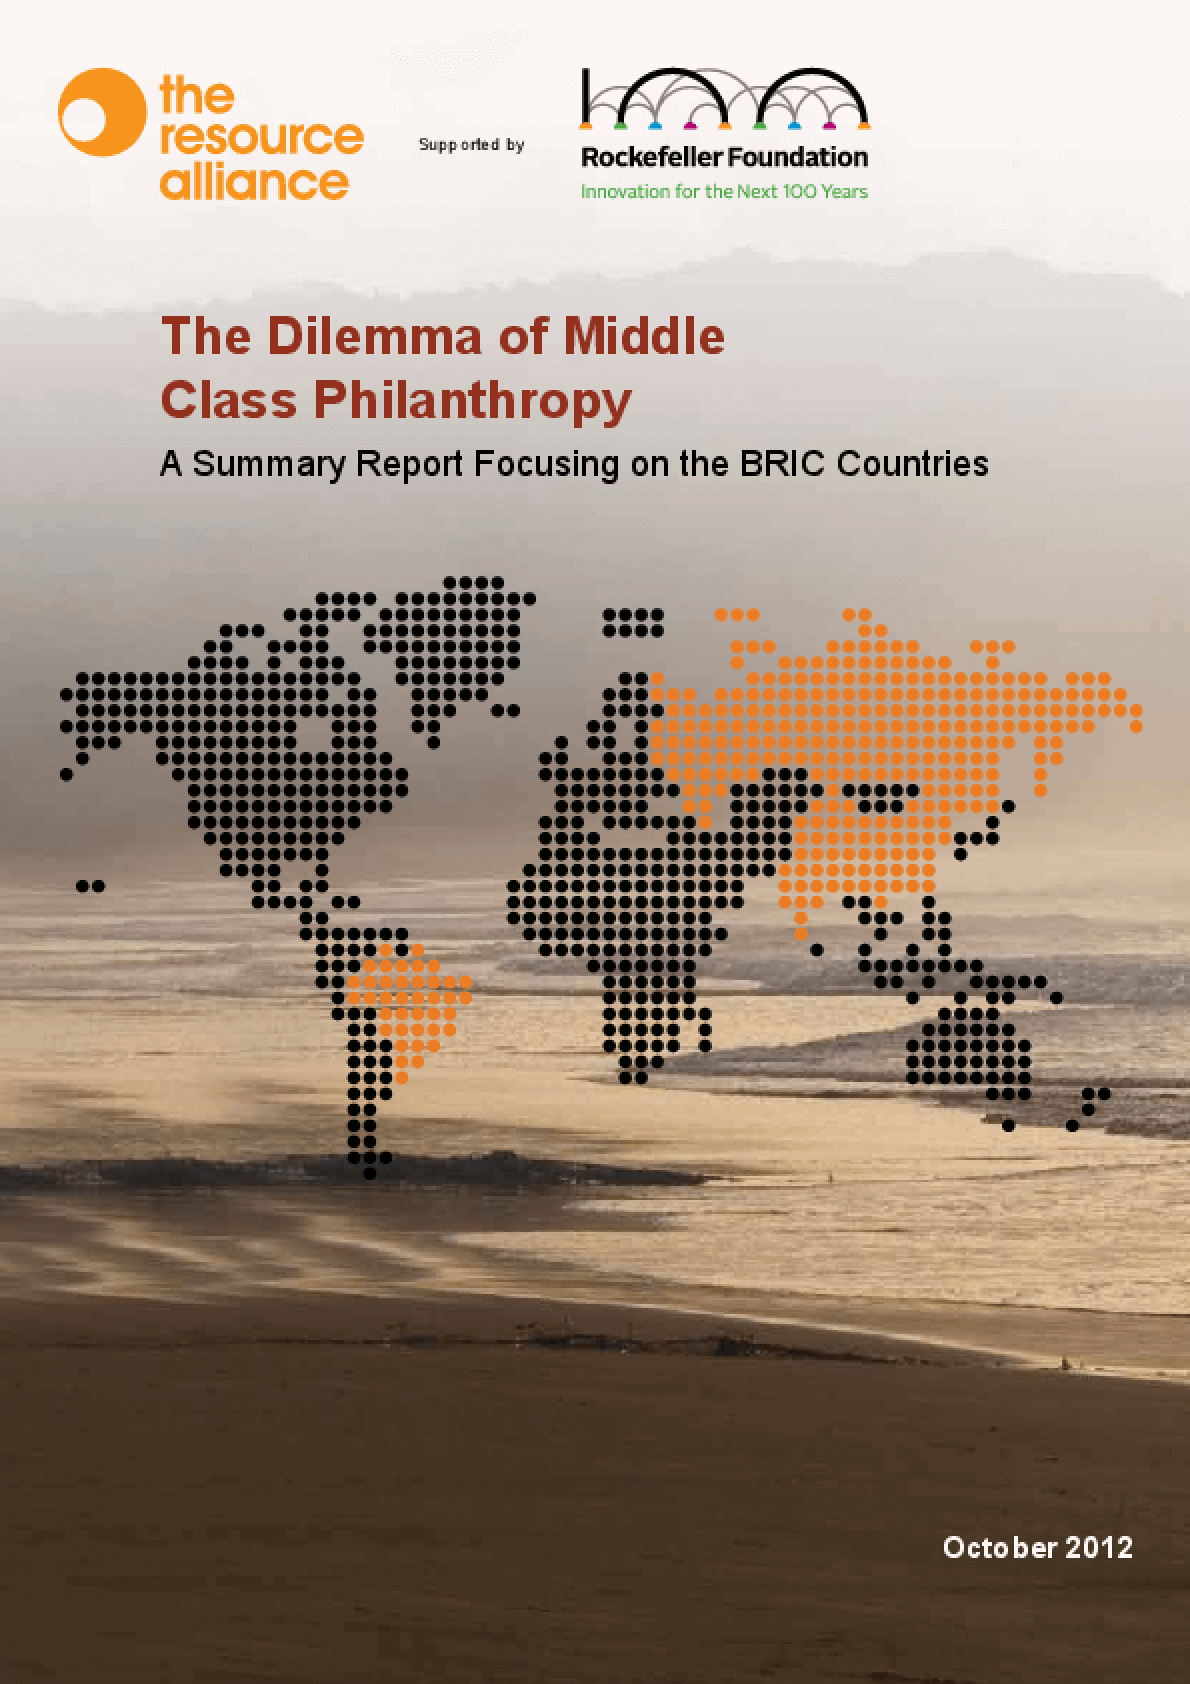 The Dilemma of Middle Class Philanthropy: A Summary Report Focusing on the BRIC Countries